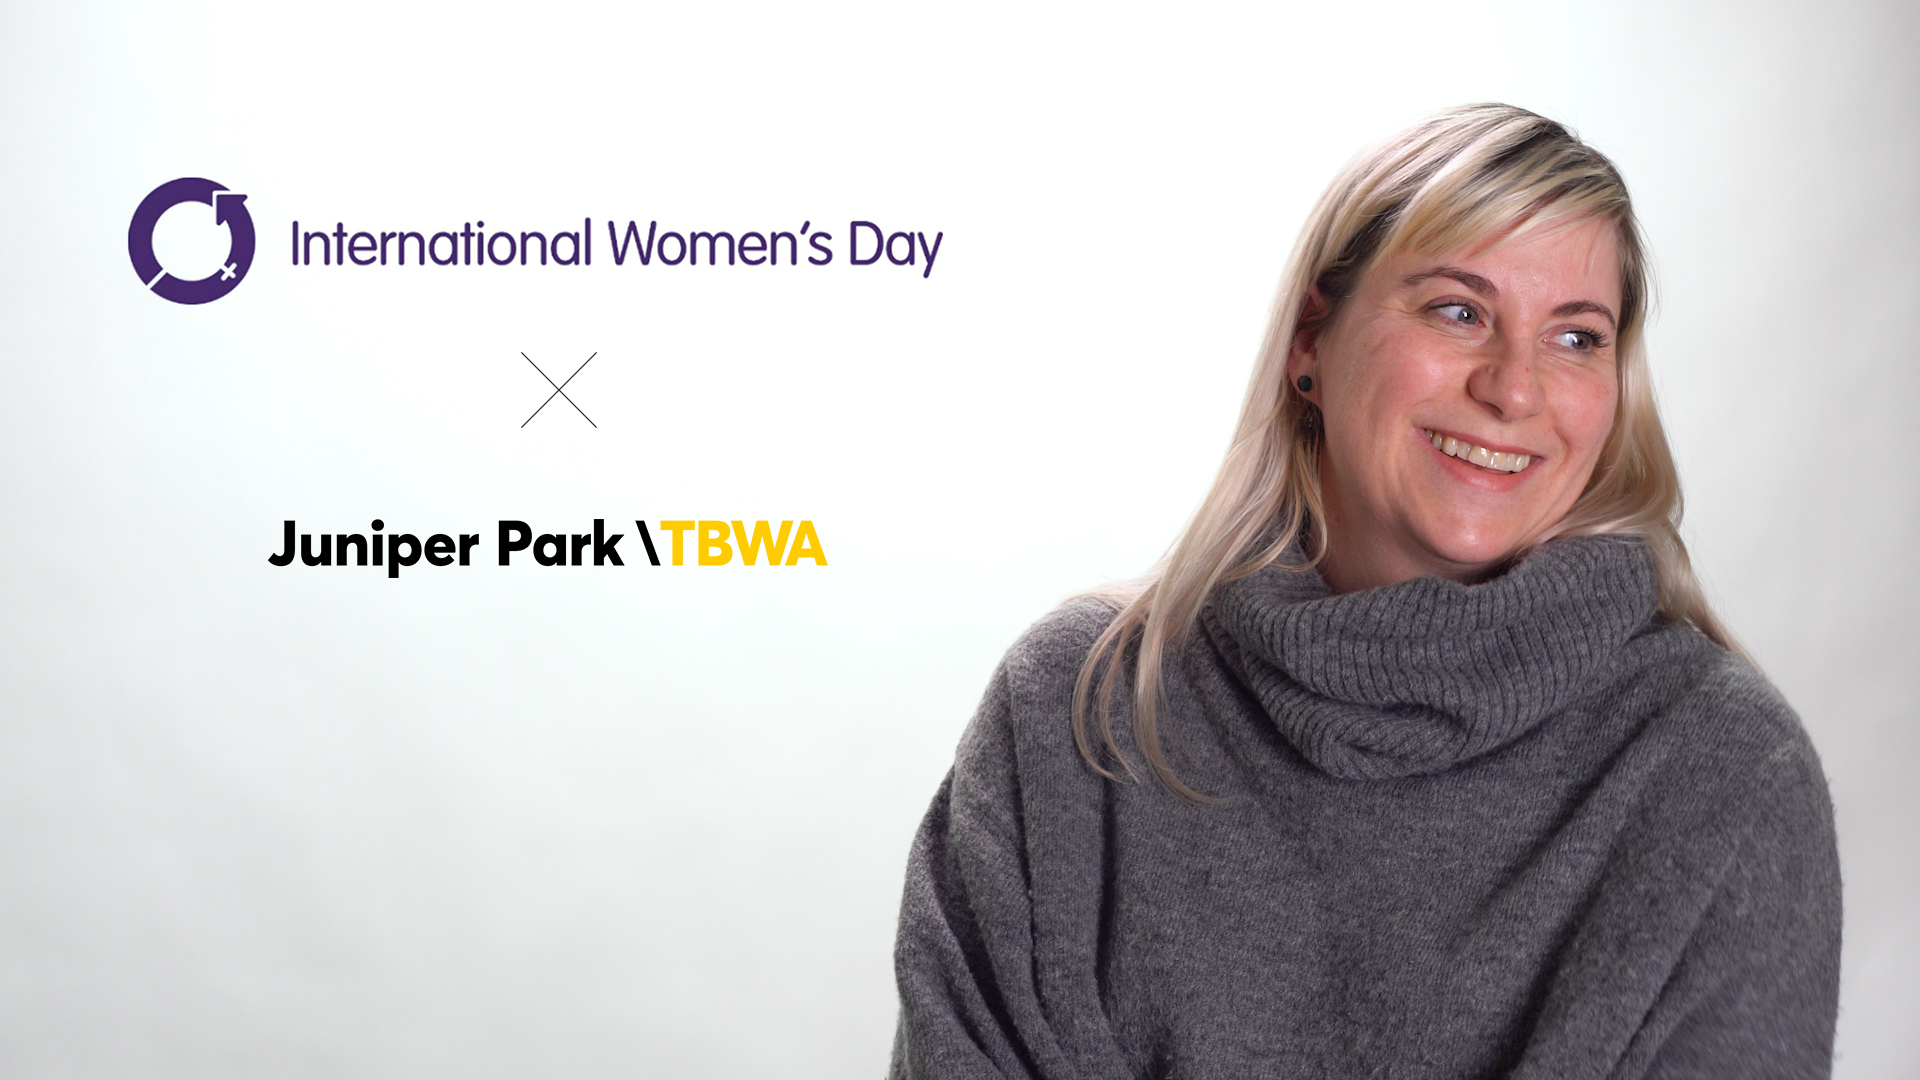 #IWD2019 - A conversation with Jenny Glover